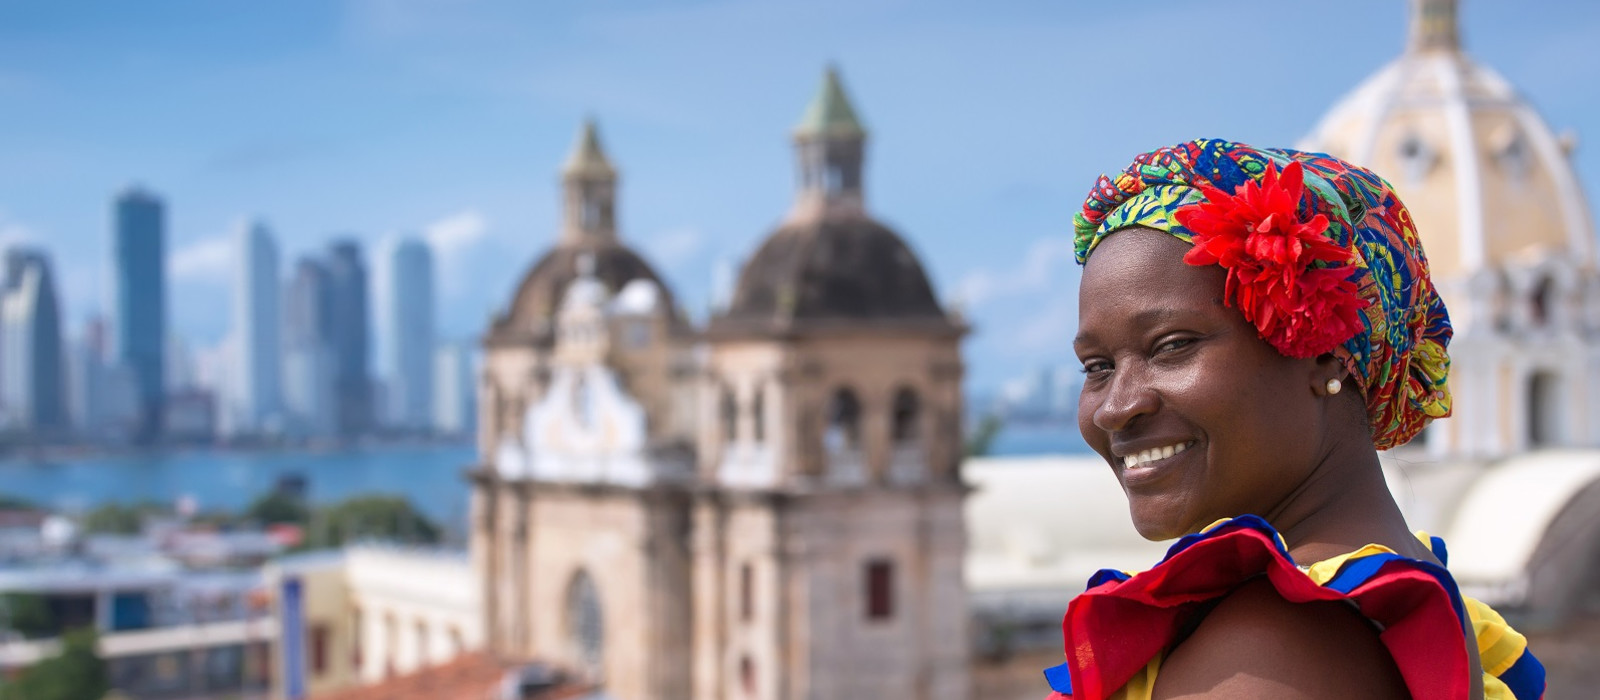 Woman in traditional costume against the backdrop of Cartagena de Indias